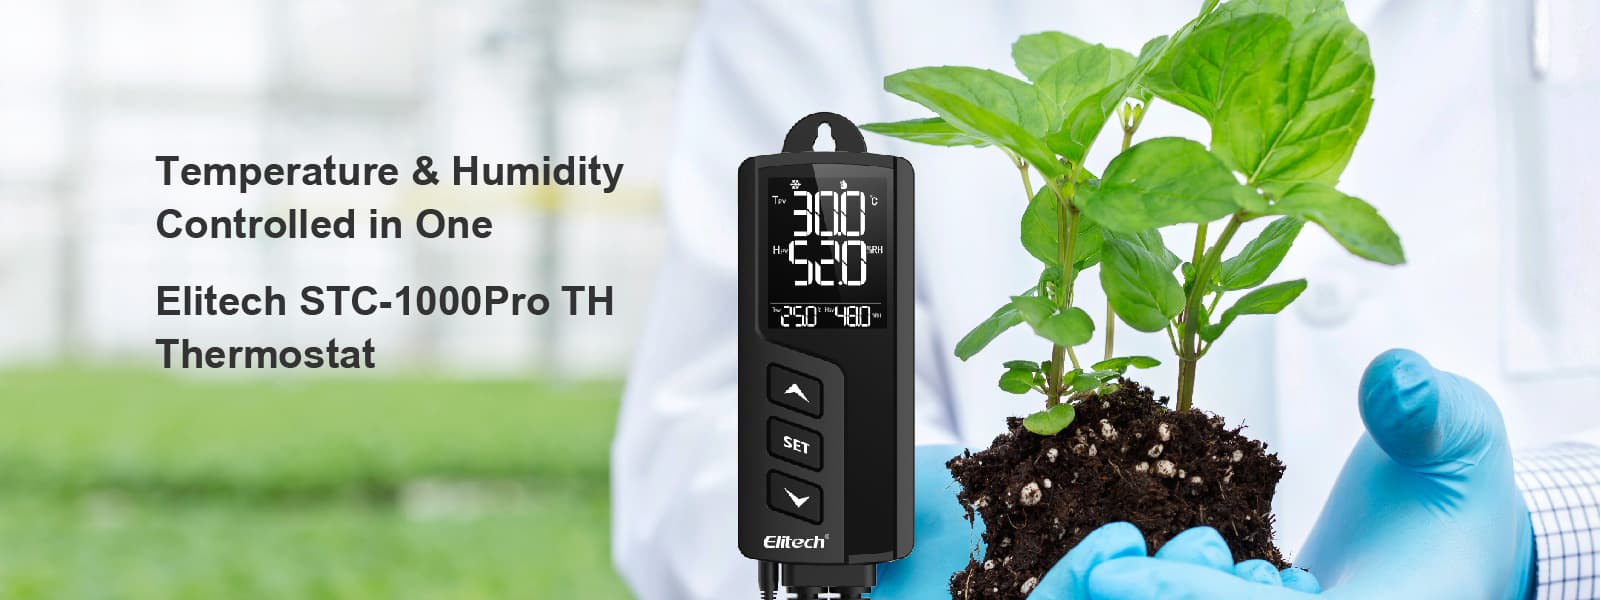 Elitech STC-1000ProTH Temperature and Humidity Controller -Elitech UK